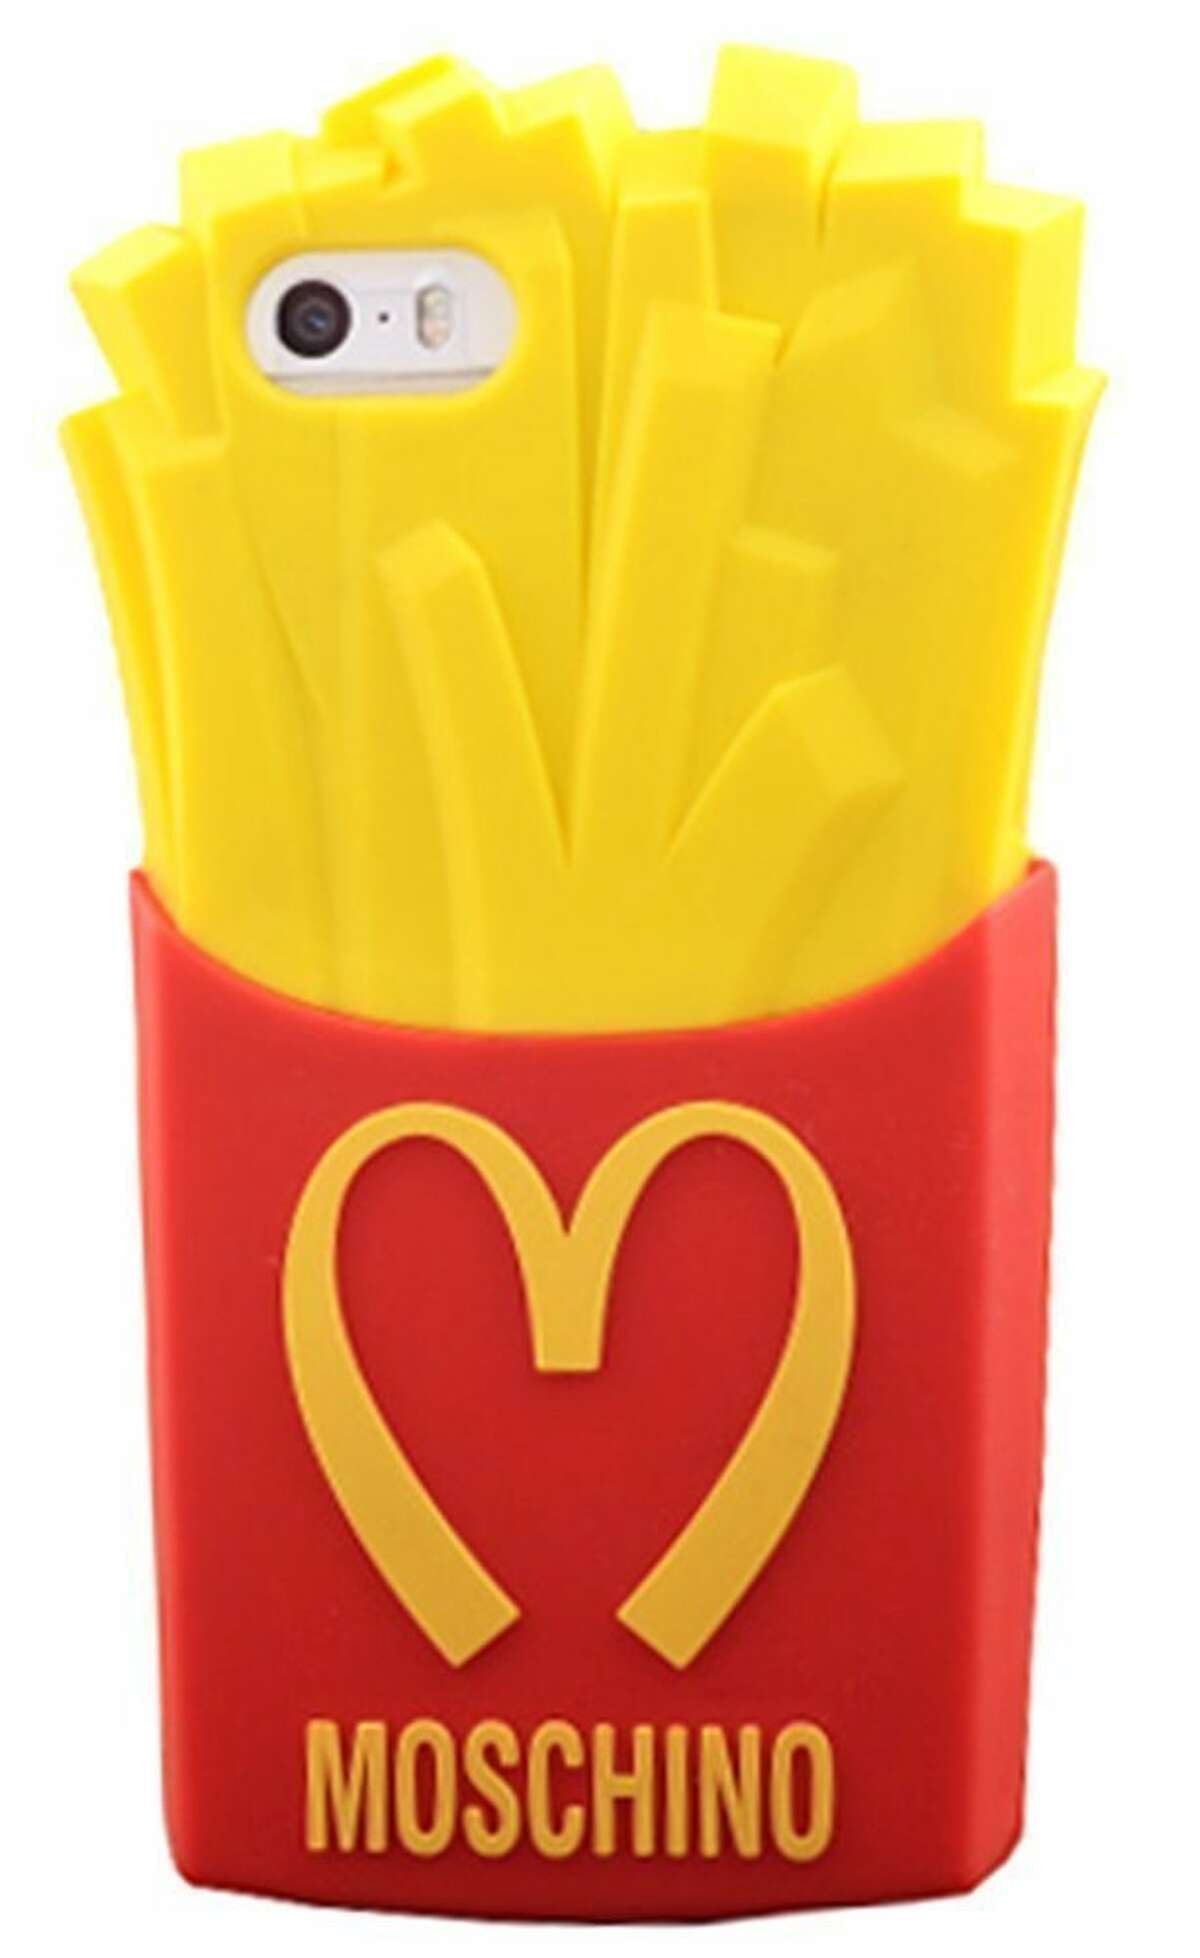 If they already have the phone, you could find them a nice case that helps them express their individuality. For example, Moschino has a selection made to resemble fast-food french fries and a melting ice cream bar.